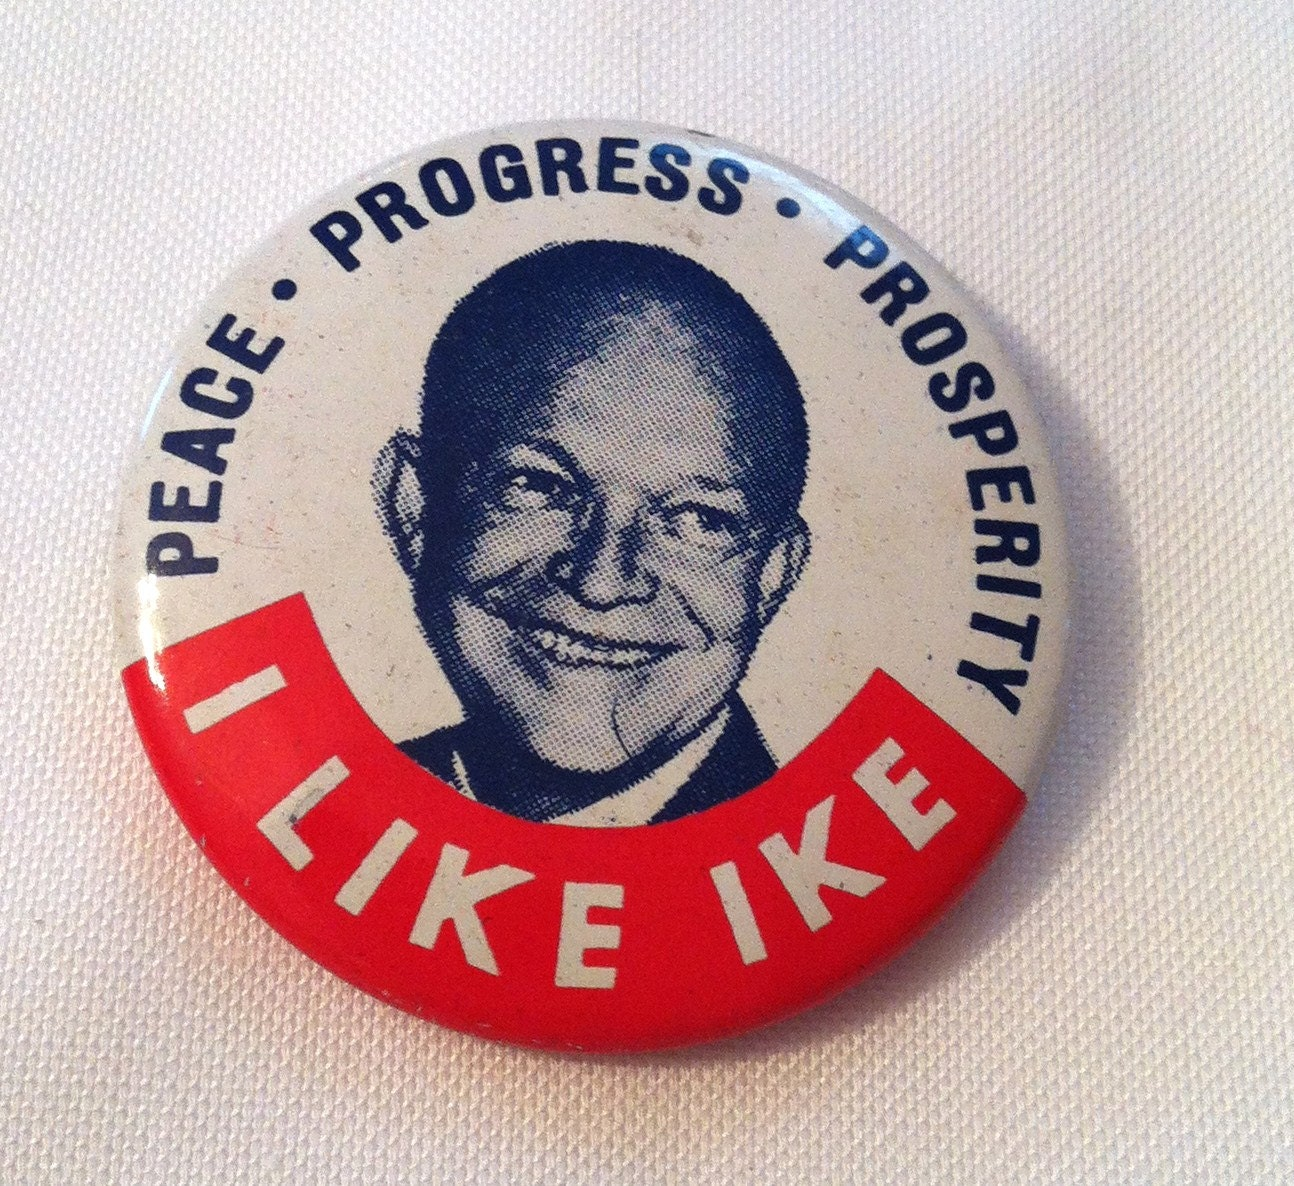 Vintage political button i like ike for Vintage sites like etsy